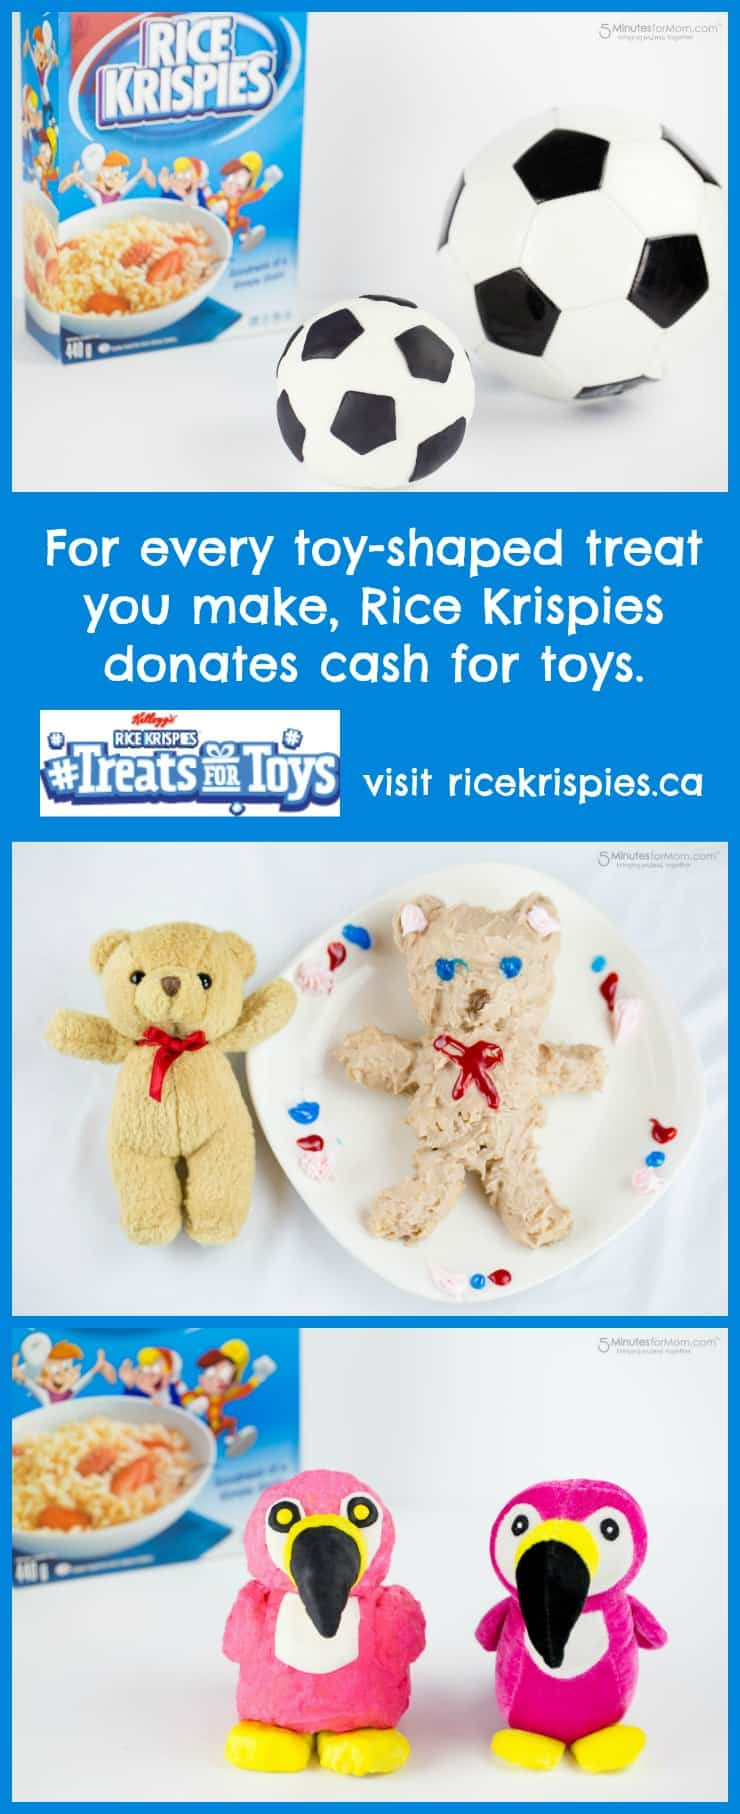 treats-for-toys-with-rice-krispies